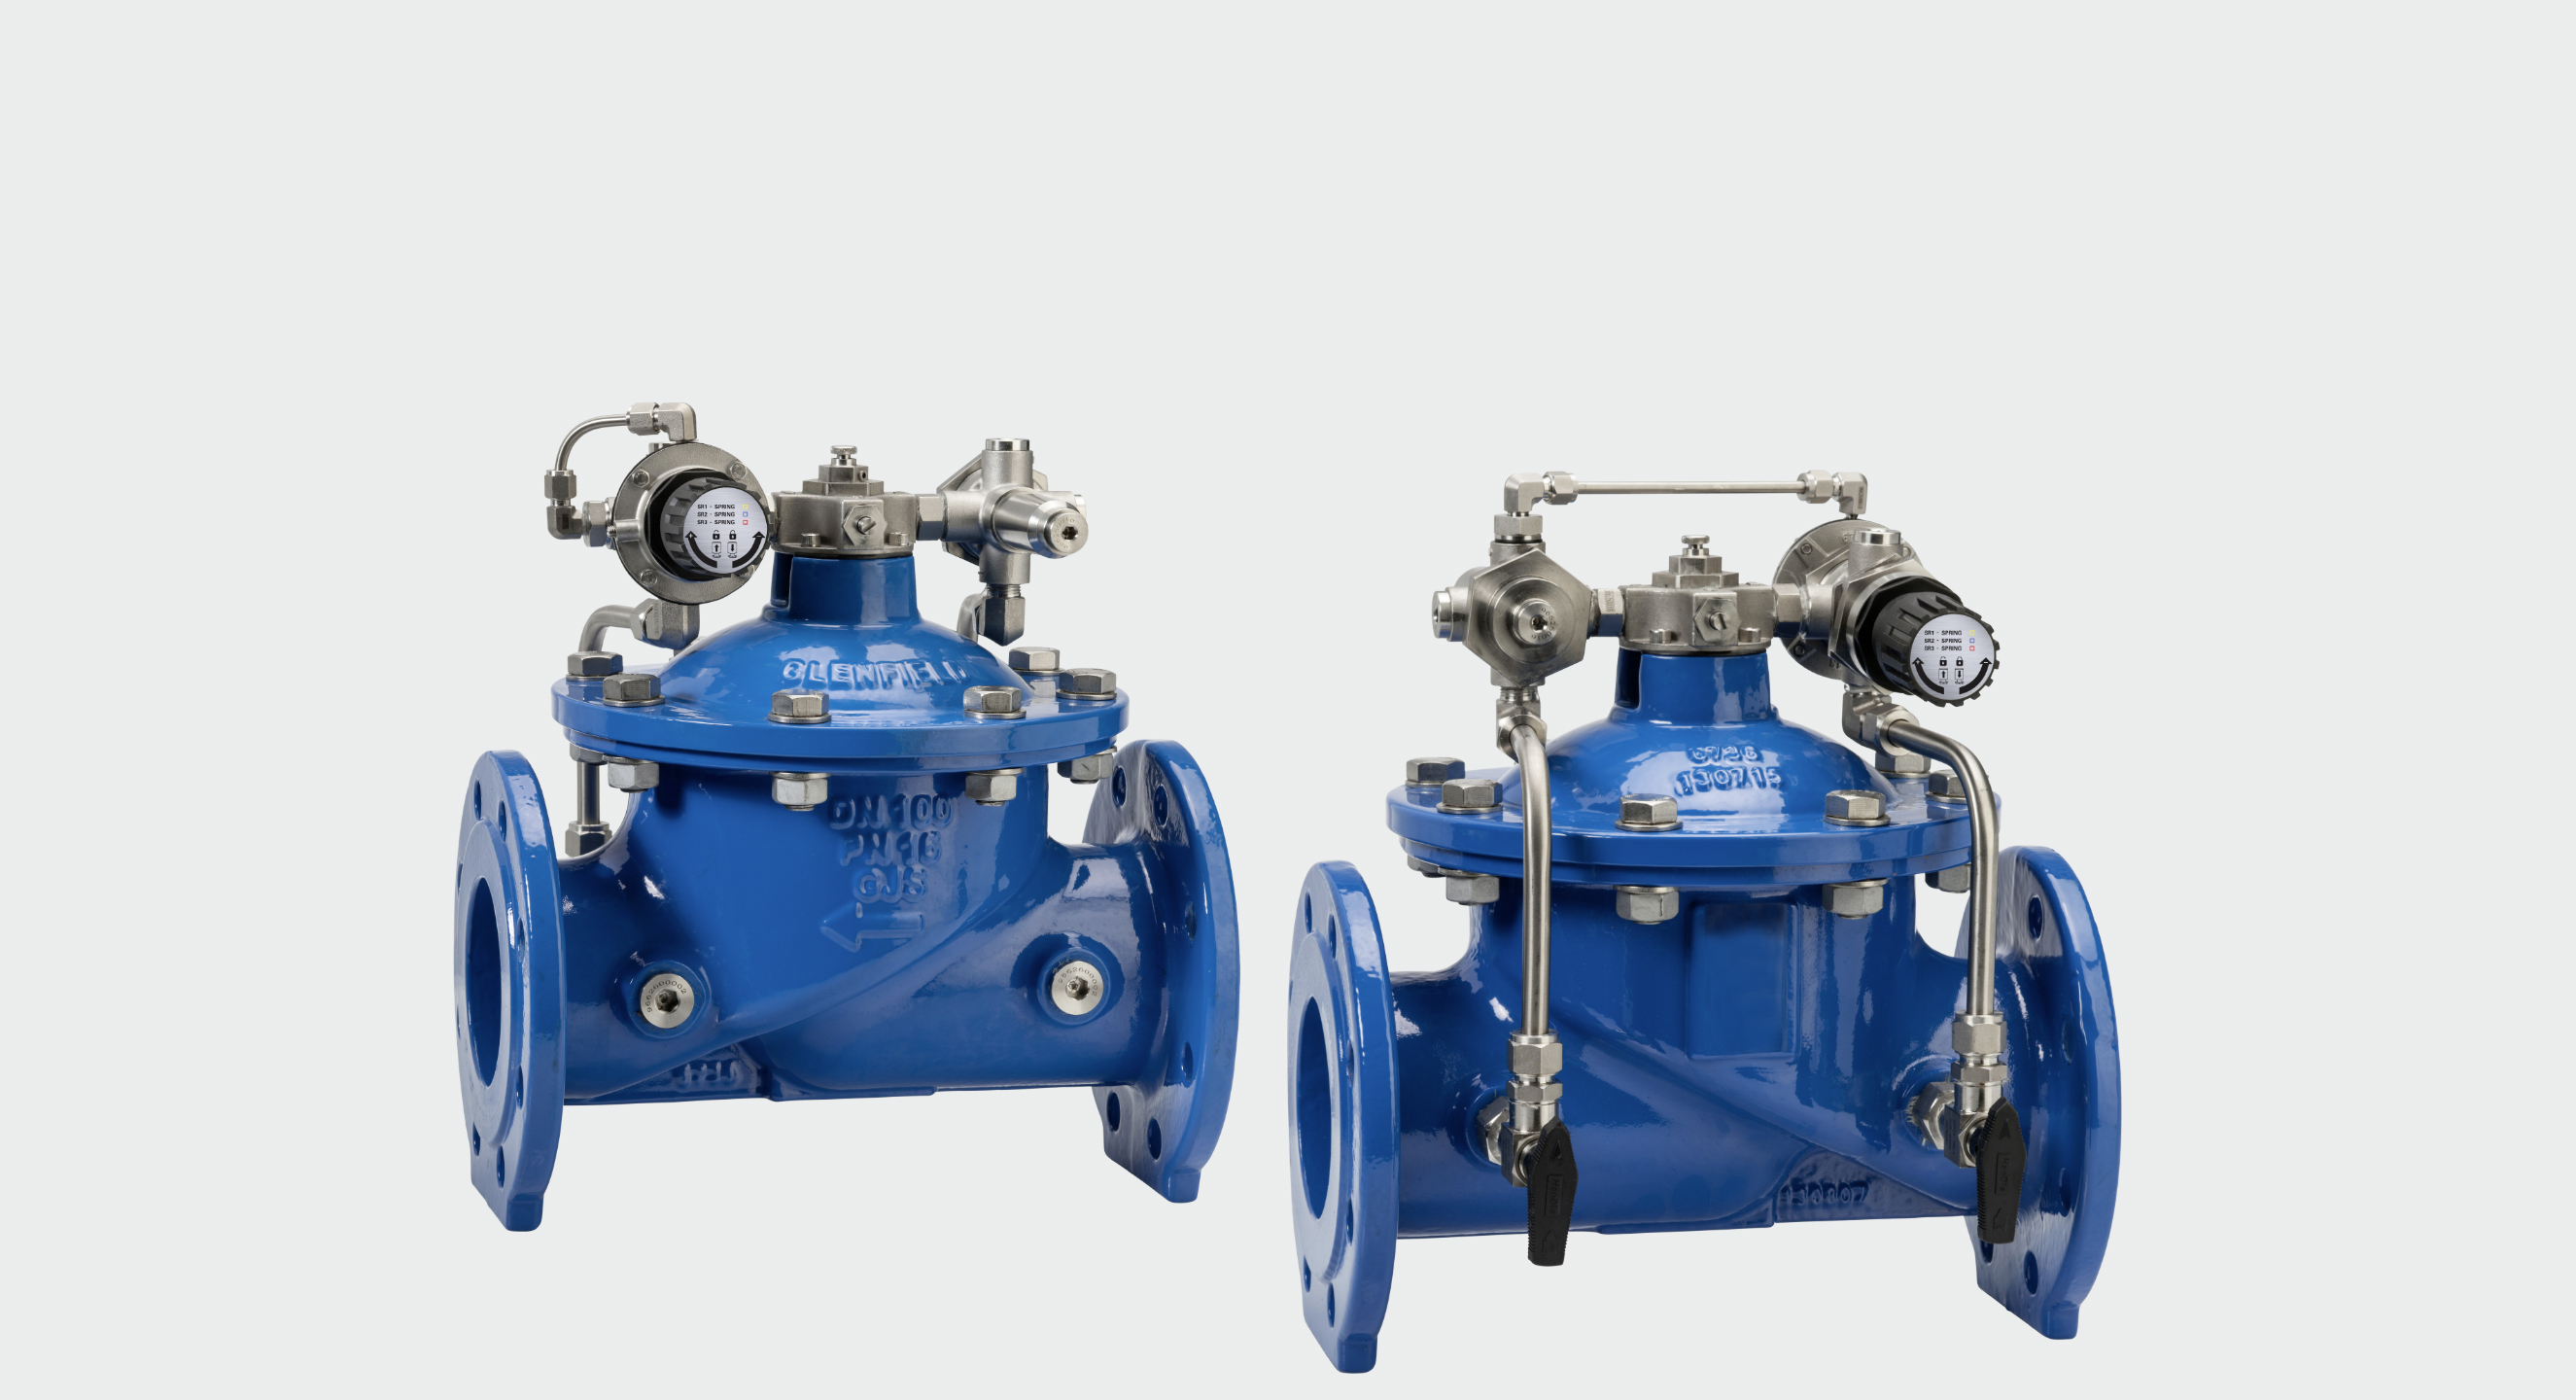 Reduce water loss and manage your water supply efficiently with AVK control valves